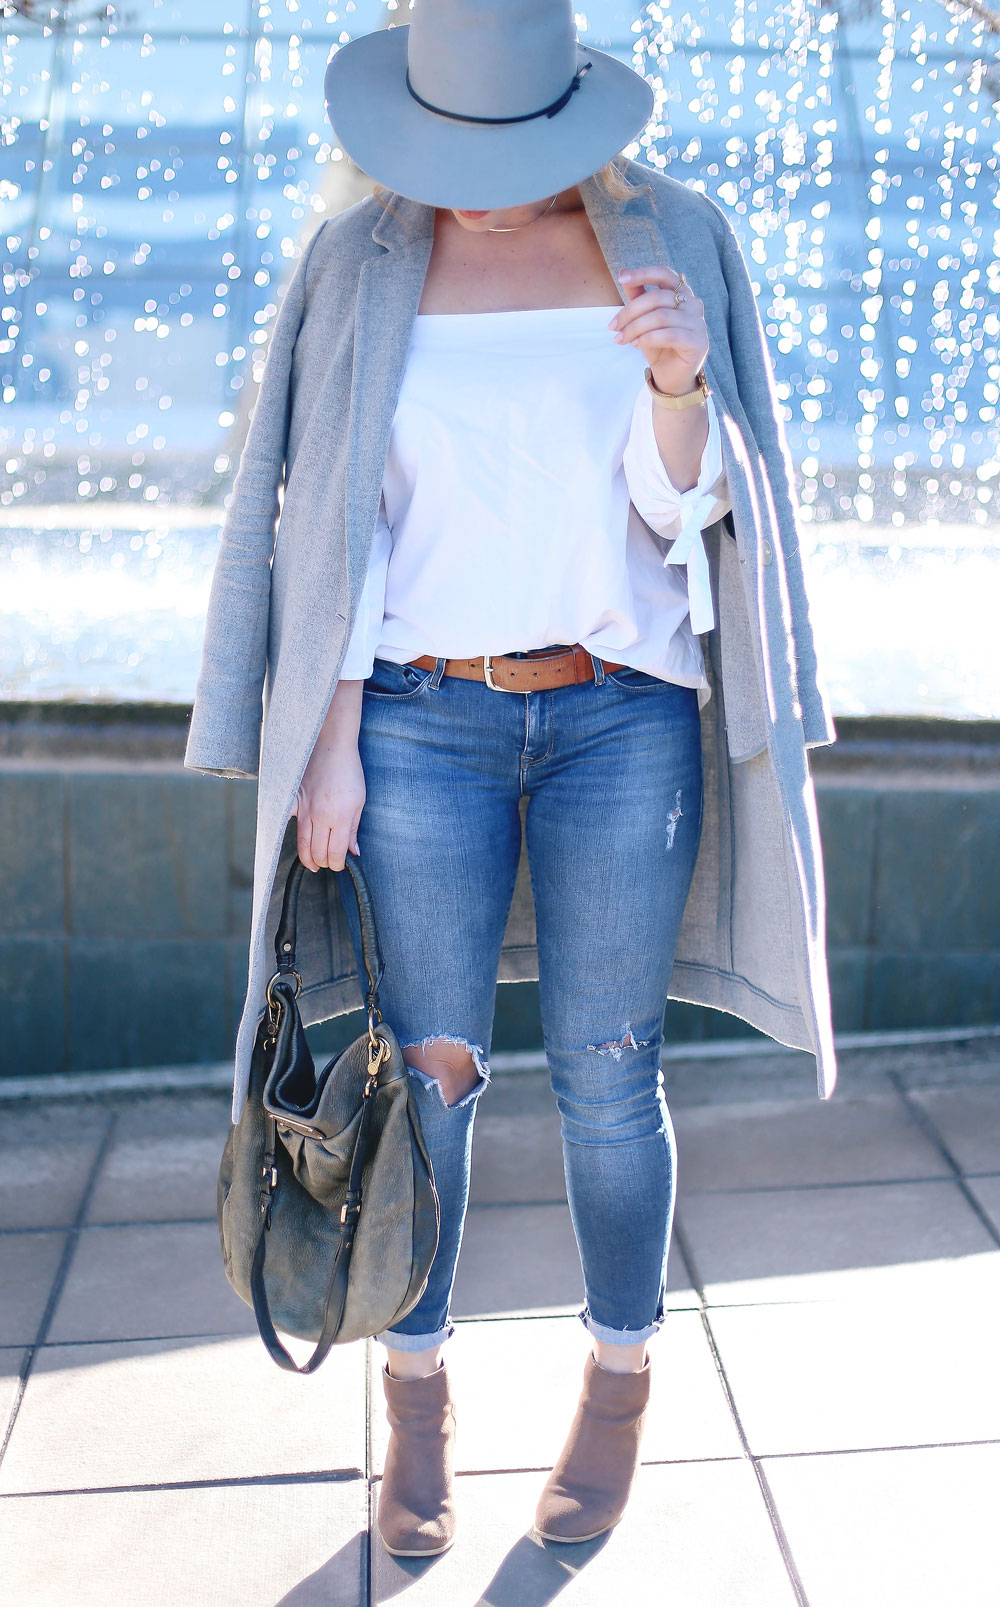 Aritzia off the shoulder white top, Aritzia grey wool coat, Mavi skinny jeans, Marc Jacobs olive green bag, Urban Outfitters suede ankle boots, Aritzia grey wool fedora, Cluse gold mesh watch and Celine sunglasses - how to style off the shoulder tops